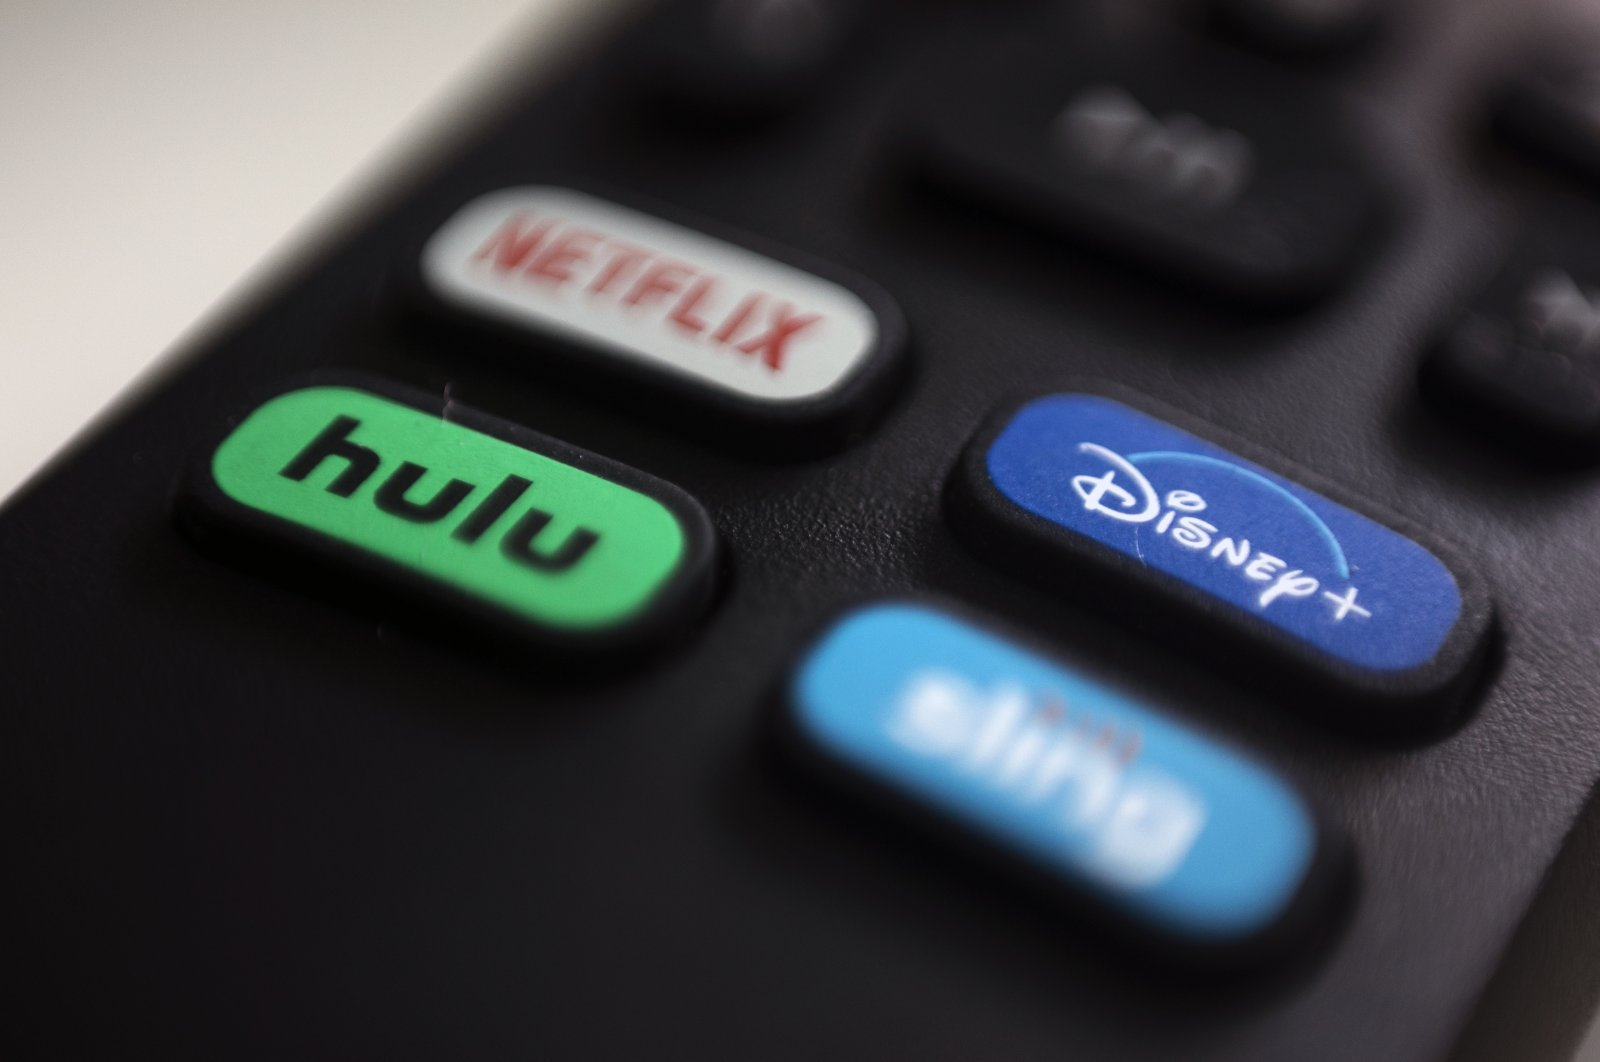 The logos for Netflix, Hulu, Disney Plus and Sling TV are pictured on a remote control in Portland, Oregon, U.S., Aug. 13, 2020.  (AP Photo)